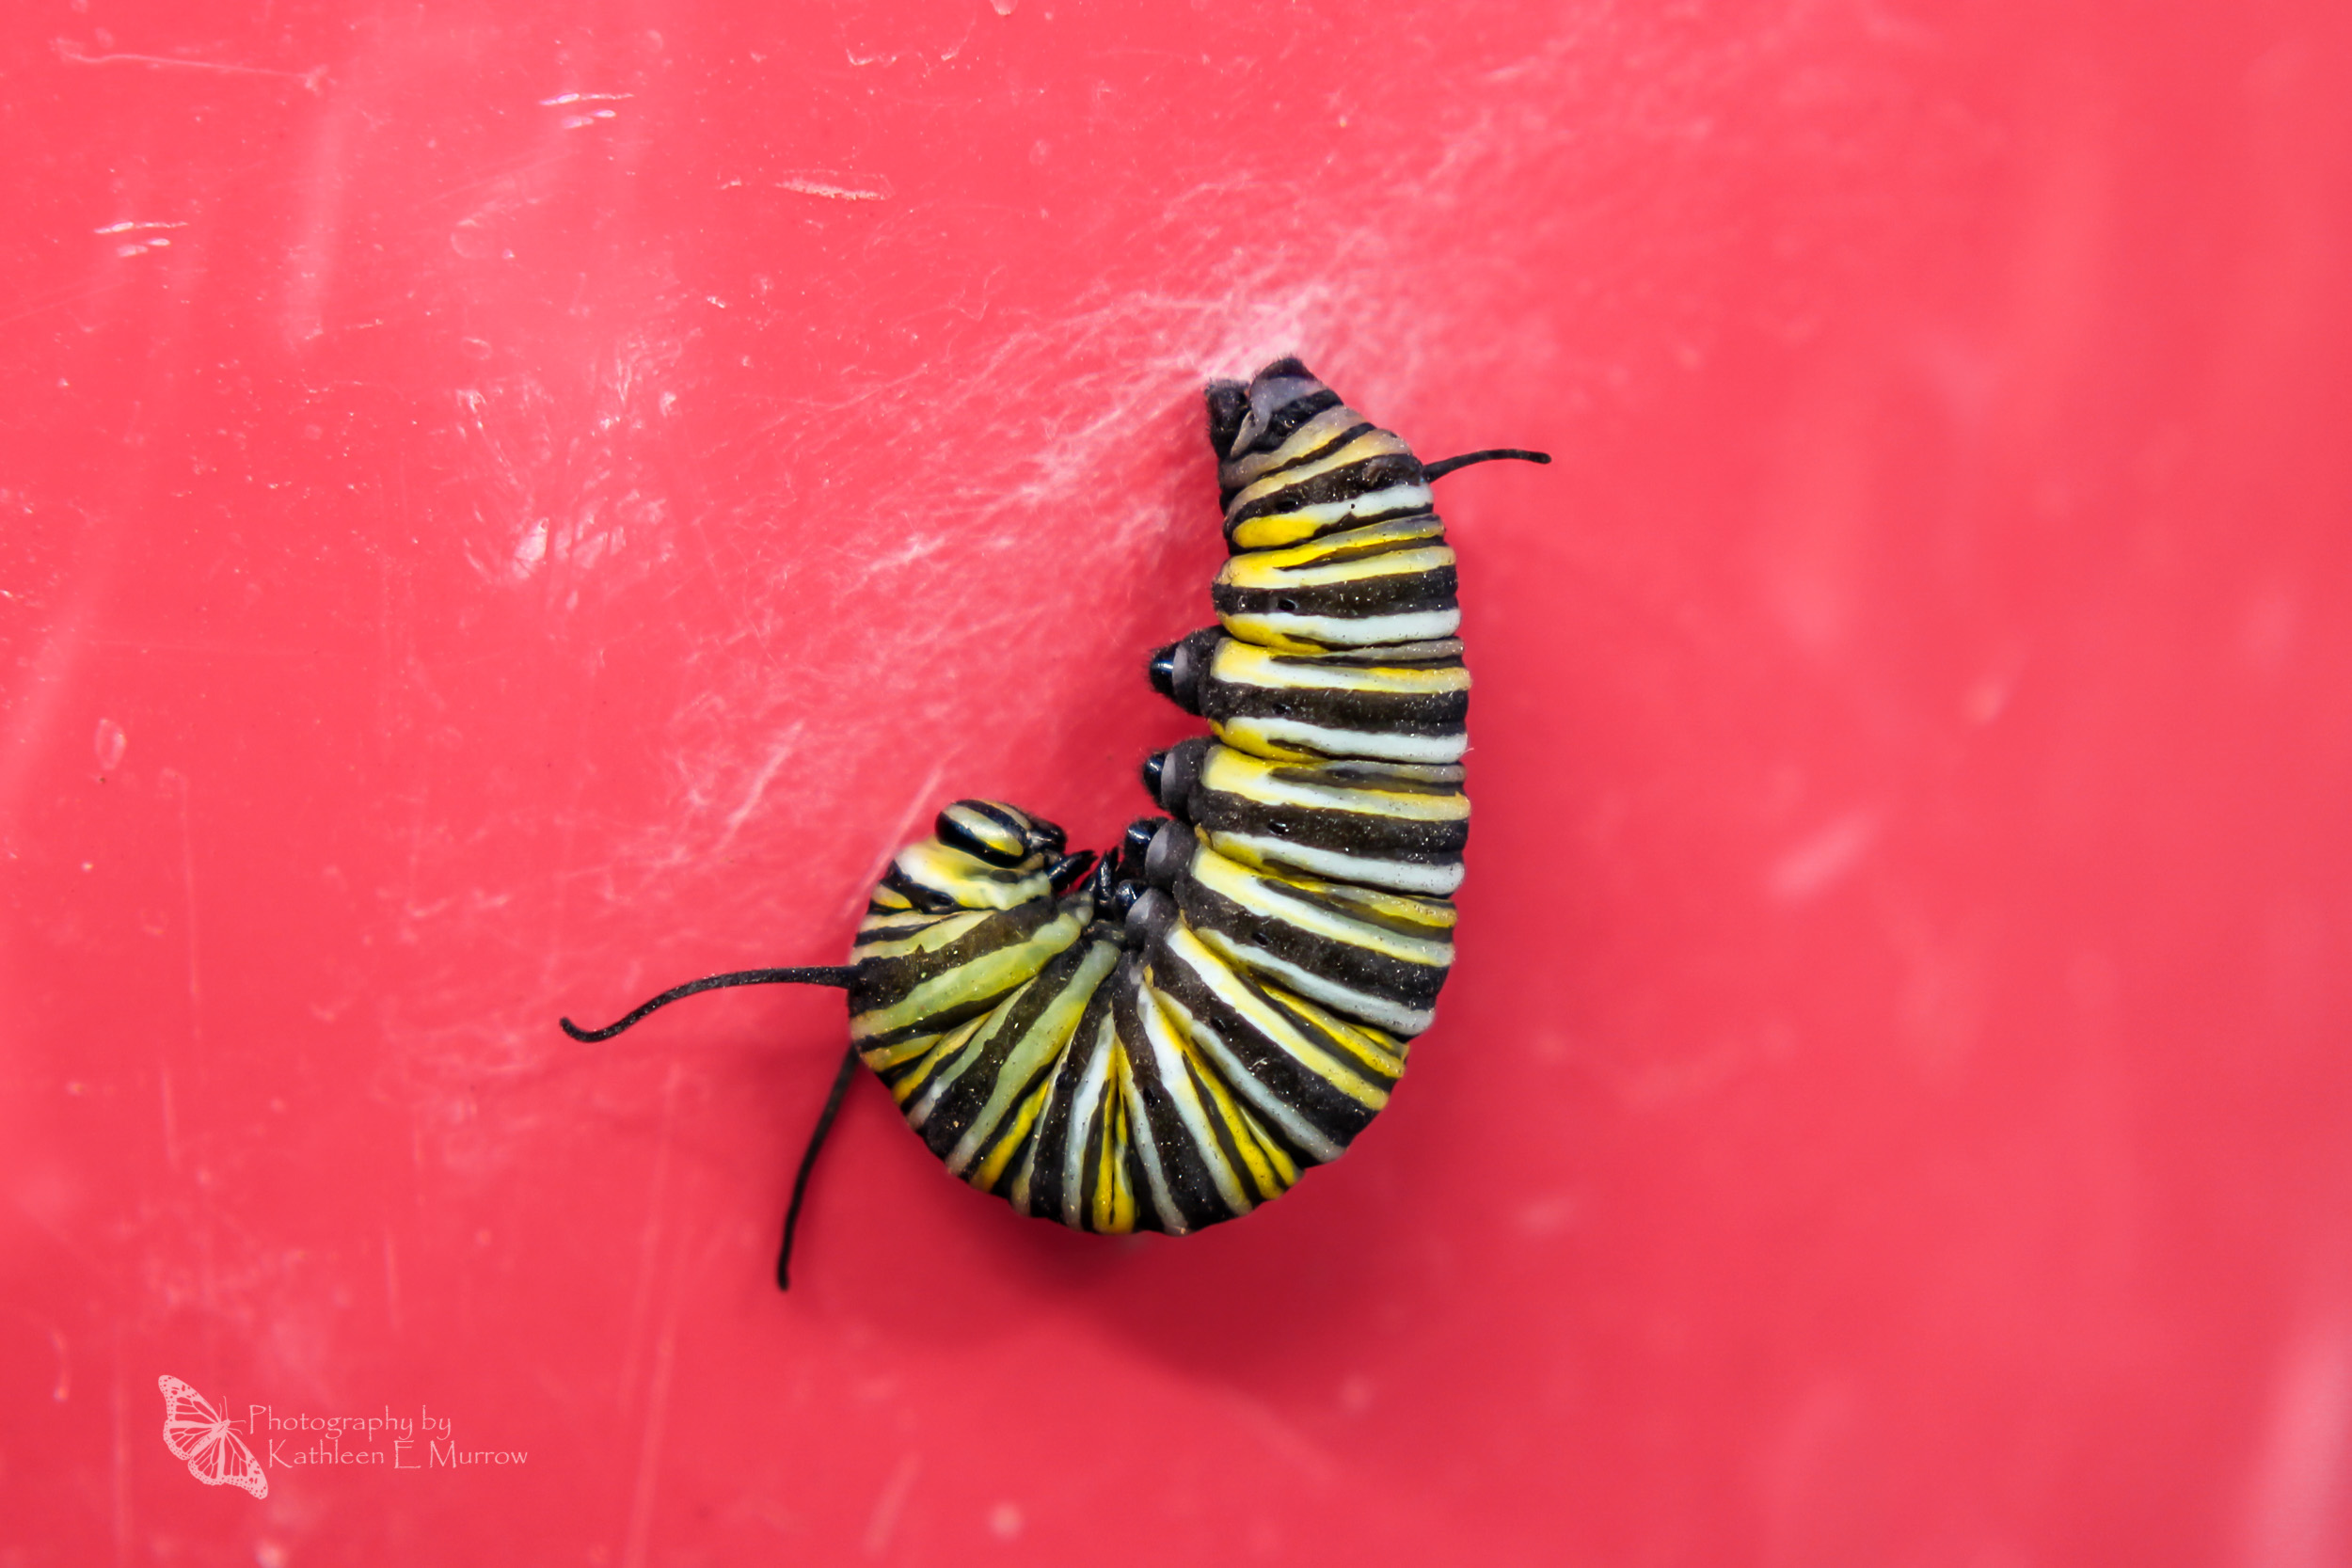 A fifth-instar monarch caterpillar hanging in a J, attached to its silk mat, on a red background